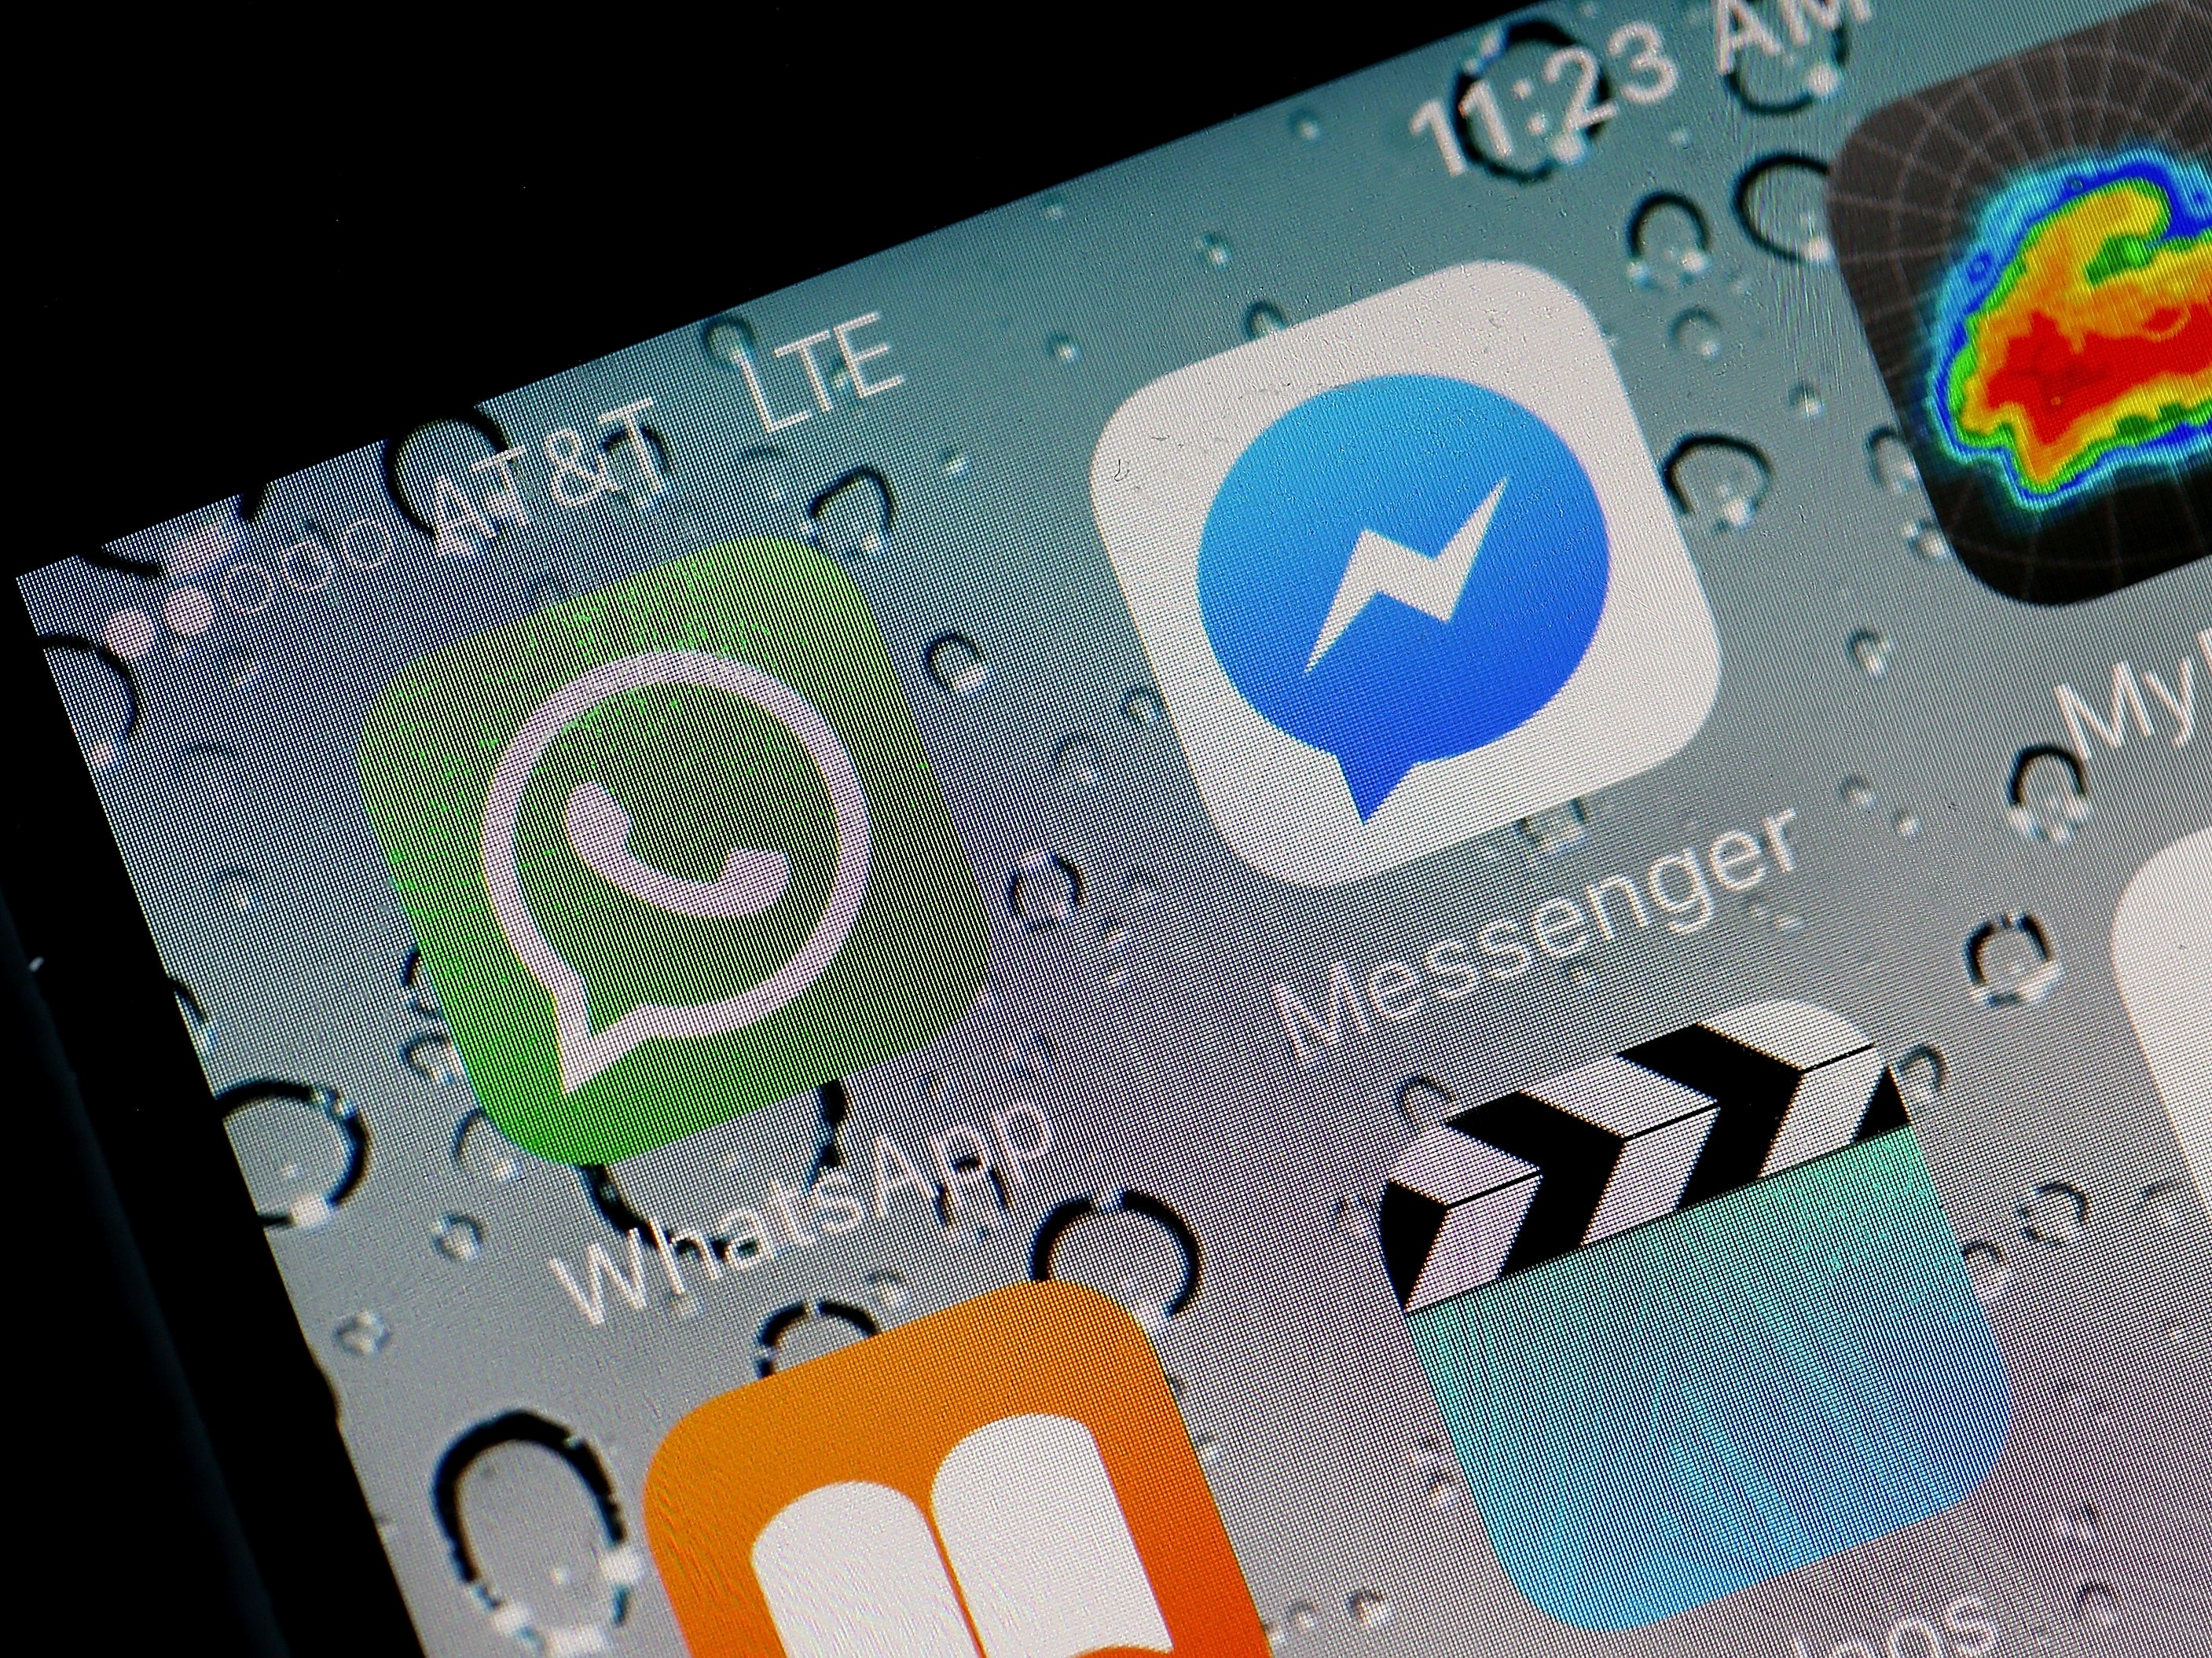 SAN ANSELMO, CALIFORNIA - APRIL 06:  In this photo illustration, the WhatsApp application is displayed on a iPhone on April 6, 2016 in San Anselmo, California. Facebook-owned mobile mobile messaging application WhatsApp announced that it has completed end-to-end encryption of of all communication and data shared on the app.  (Photo by Justin Sullivan/Getty Images)